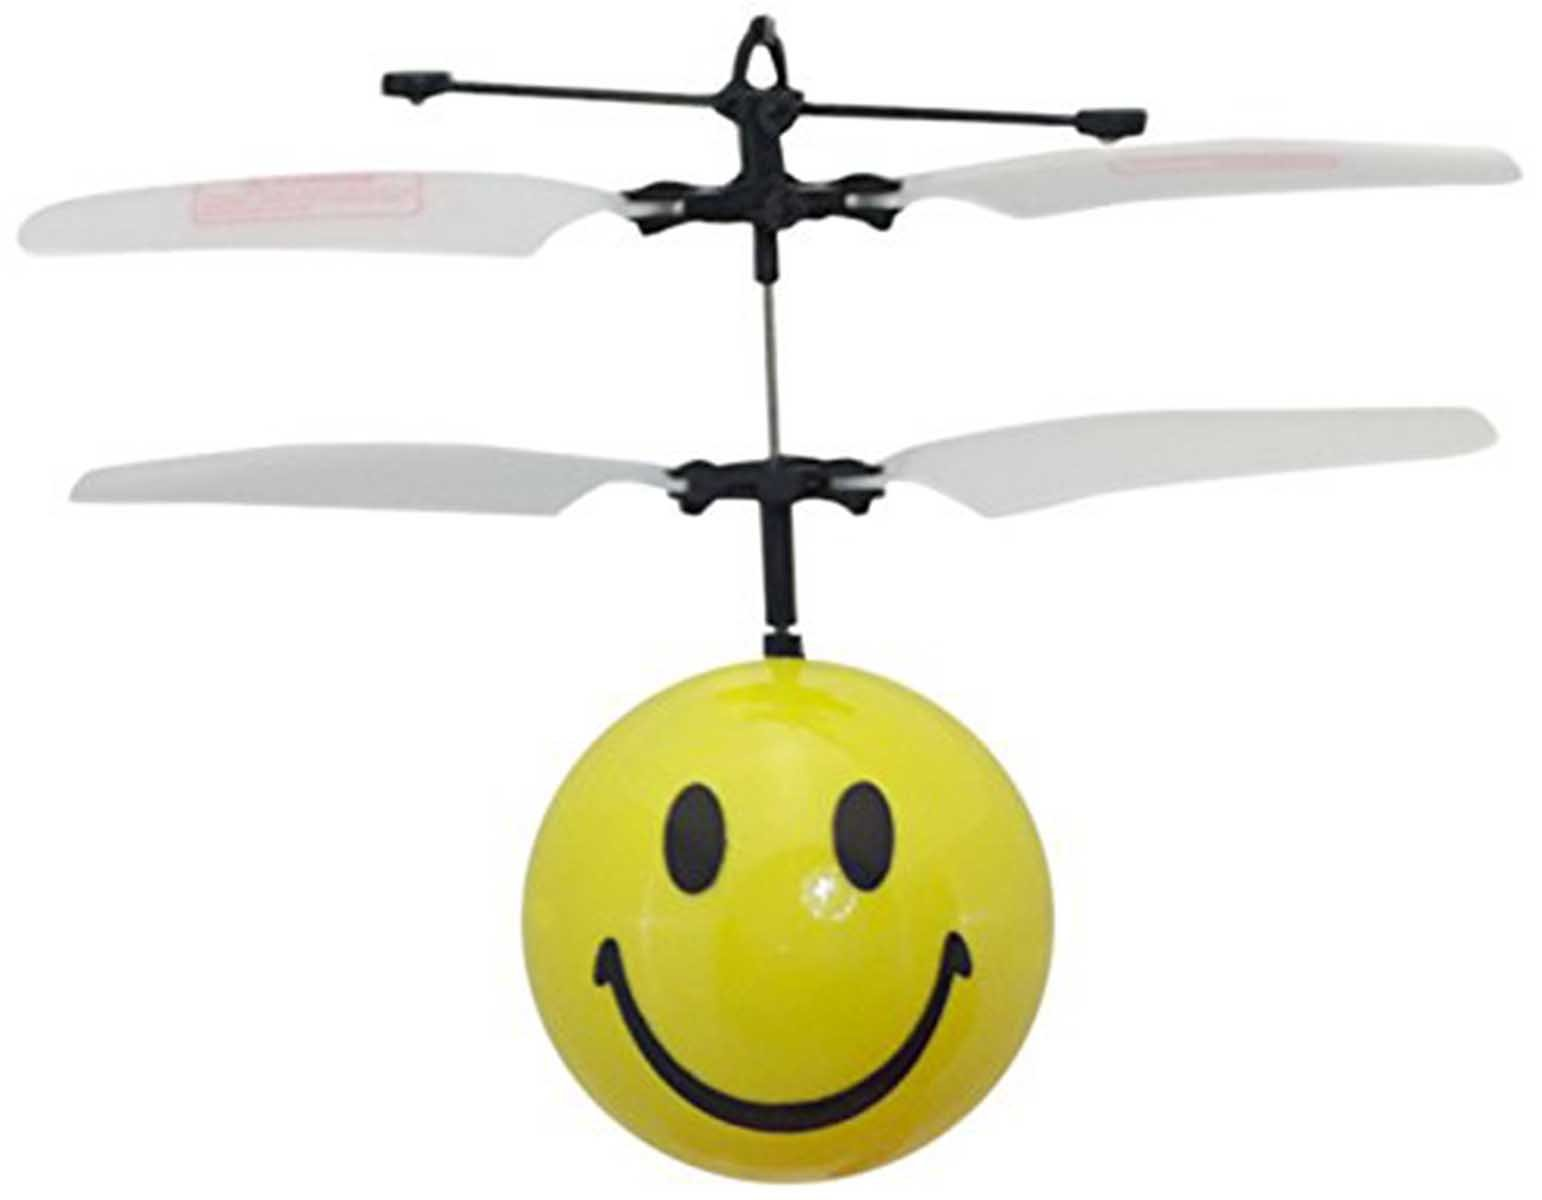 MukikiM Mini Flyer - Smiley / Watch it hover, float and fly like magic. Bring a smile to your face as you have fun flying. (Newest version featuring USB charging!)